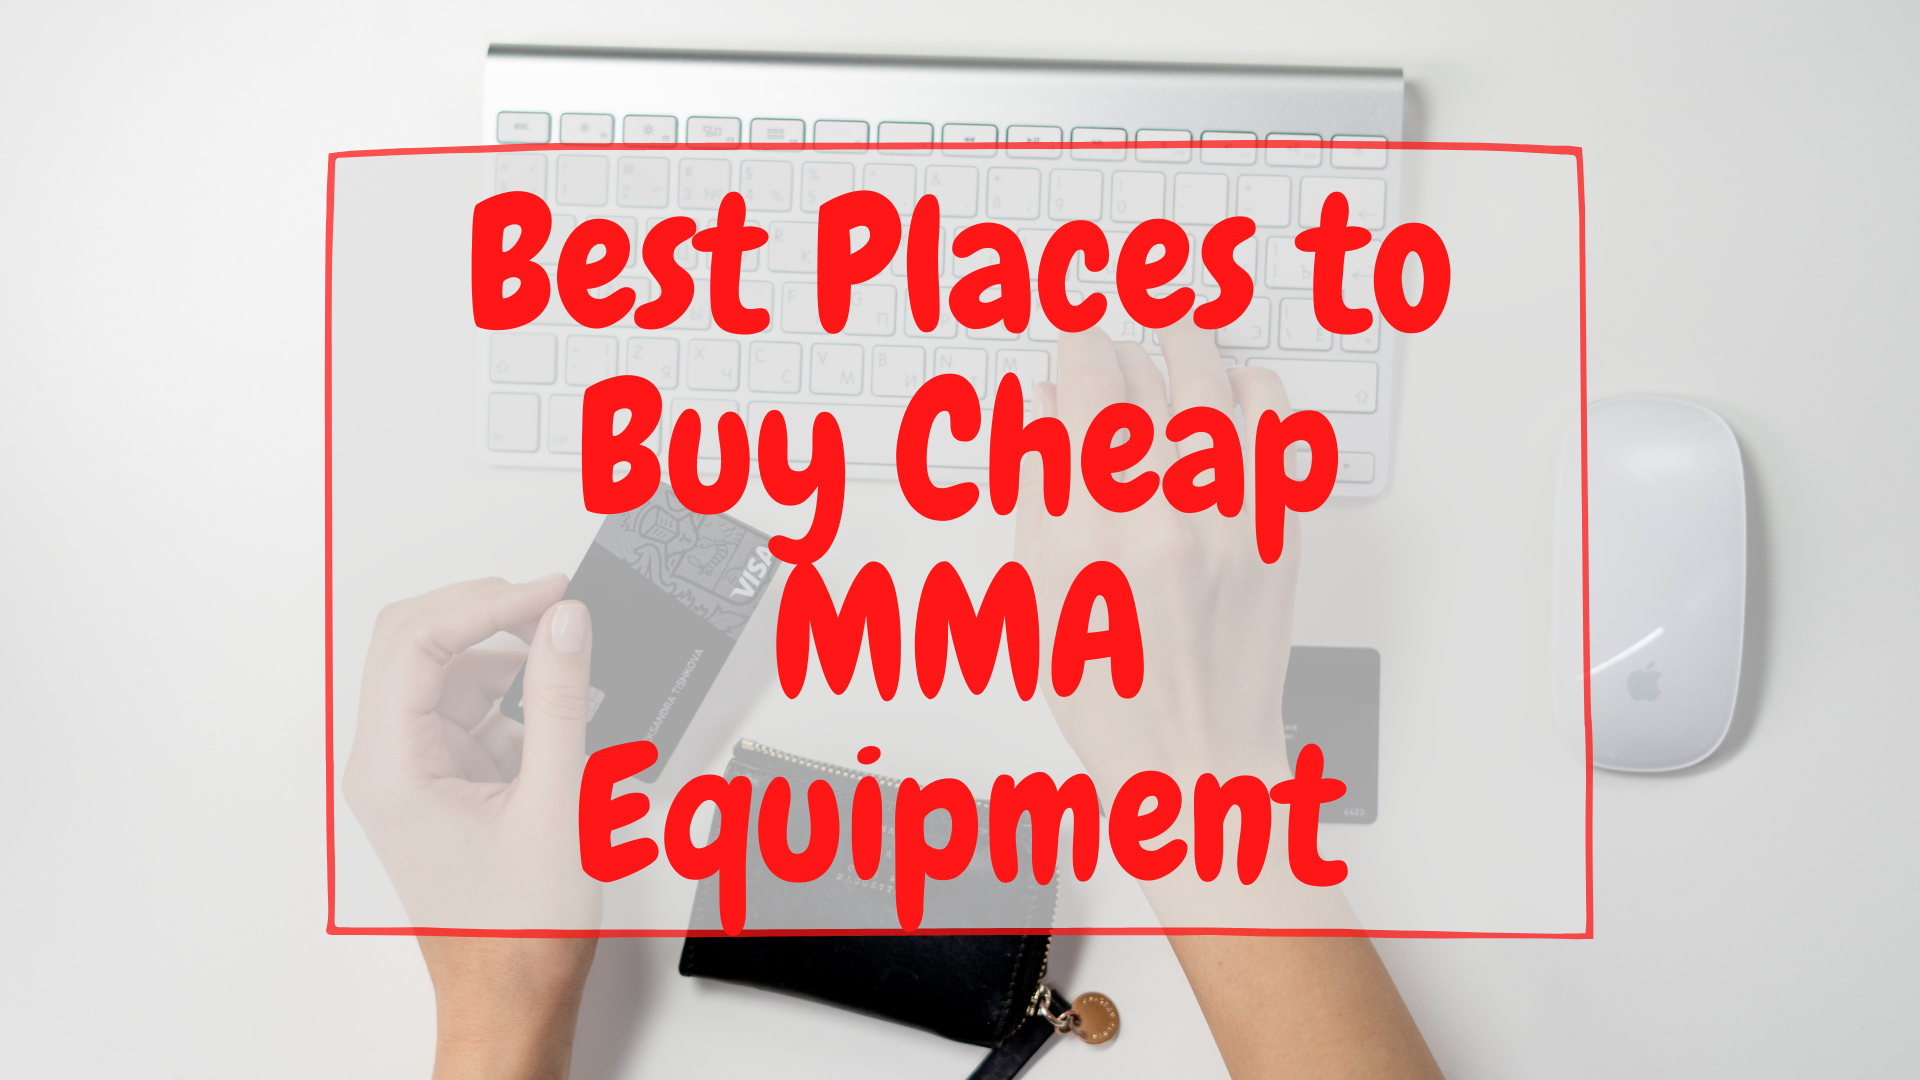 Best Places to Buy Cheap MMA equipment